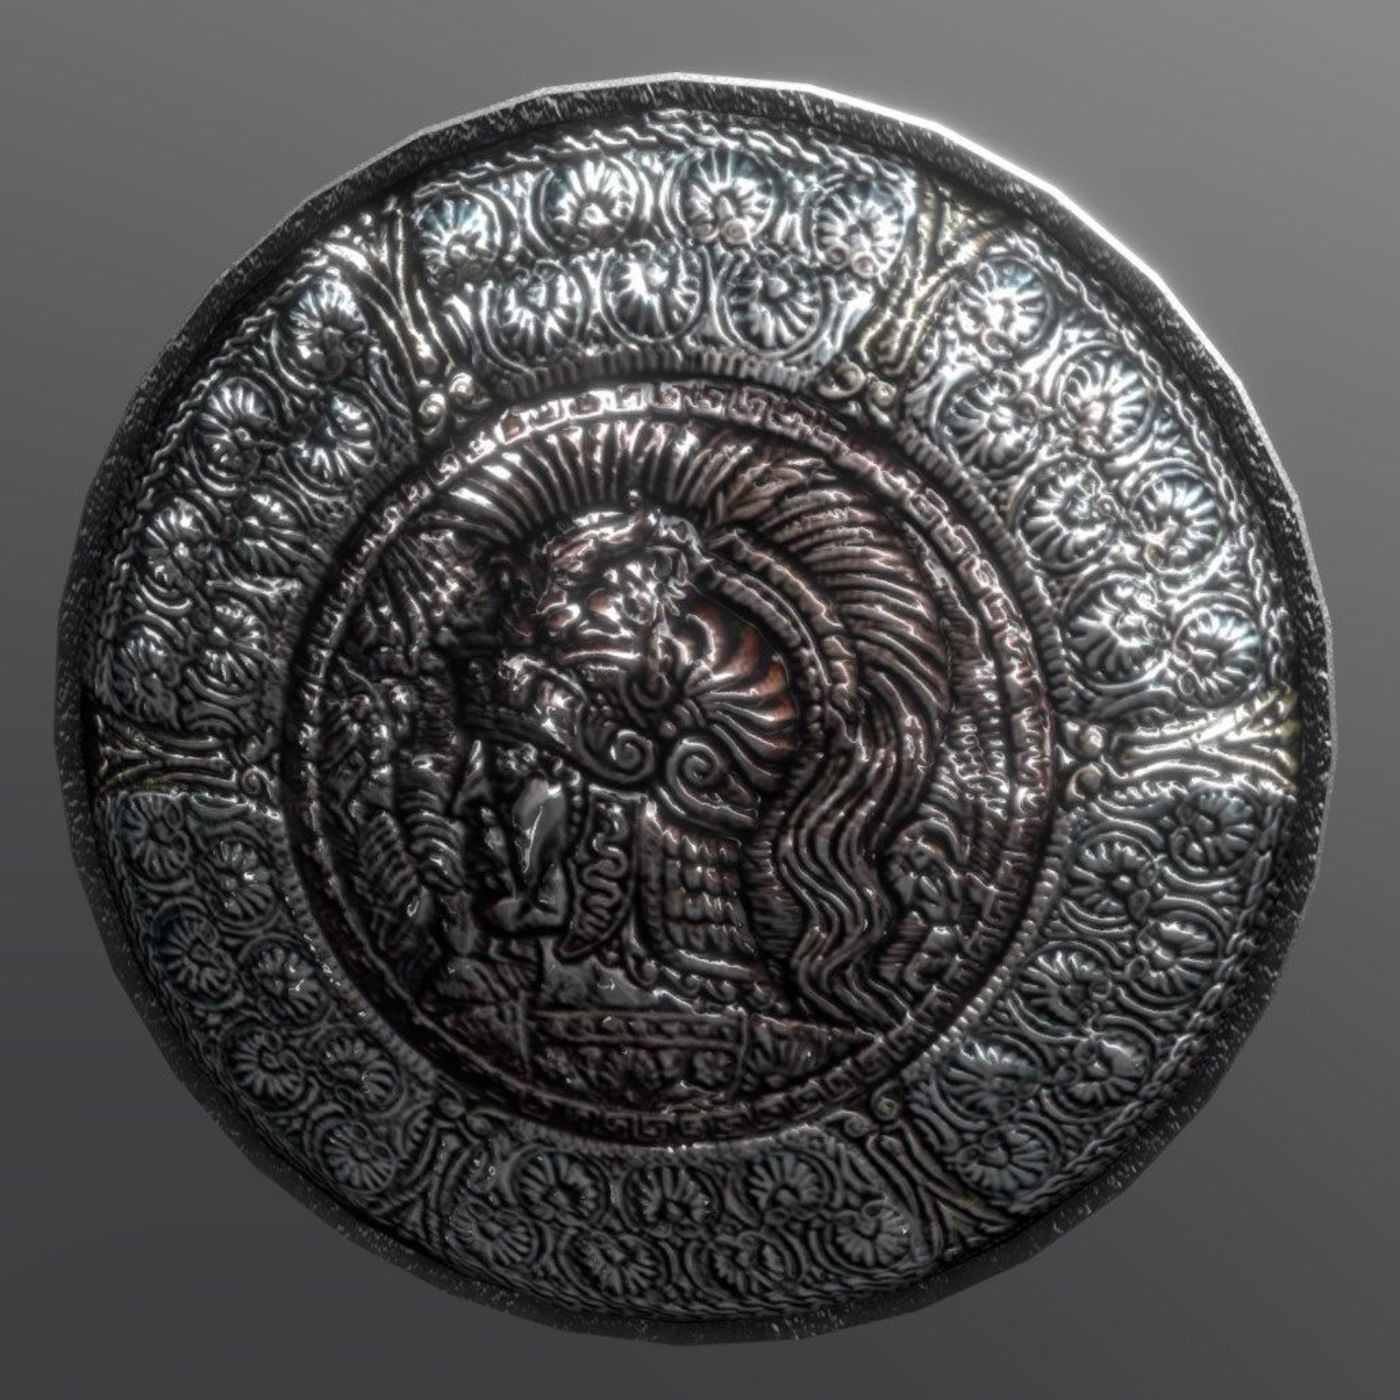 Shield with relief